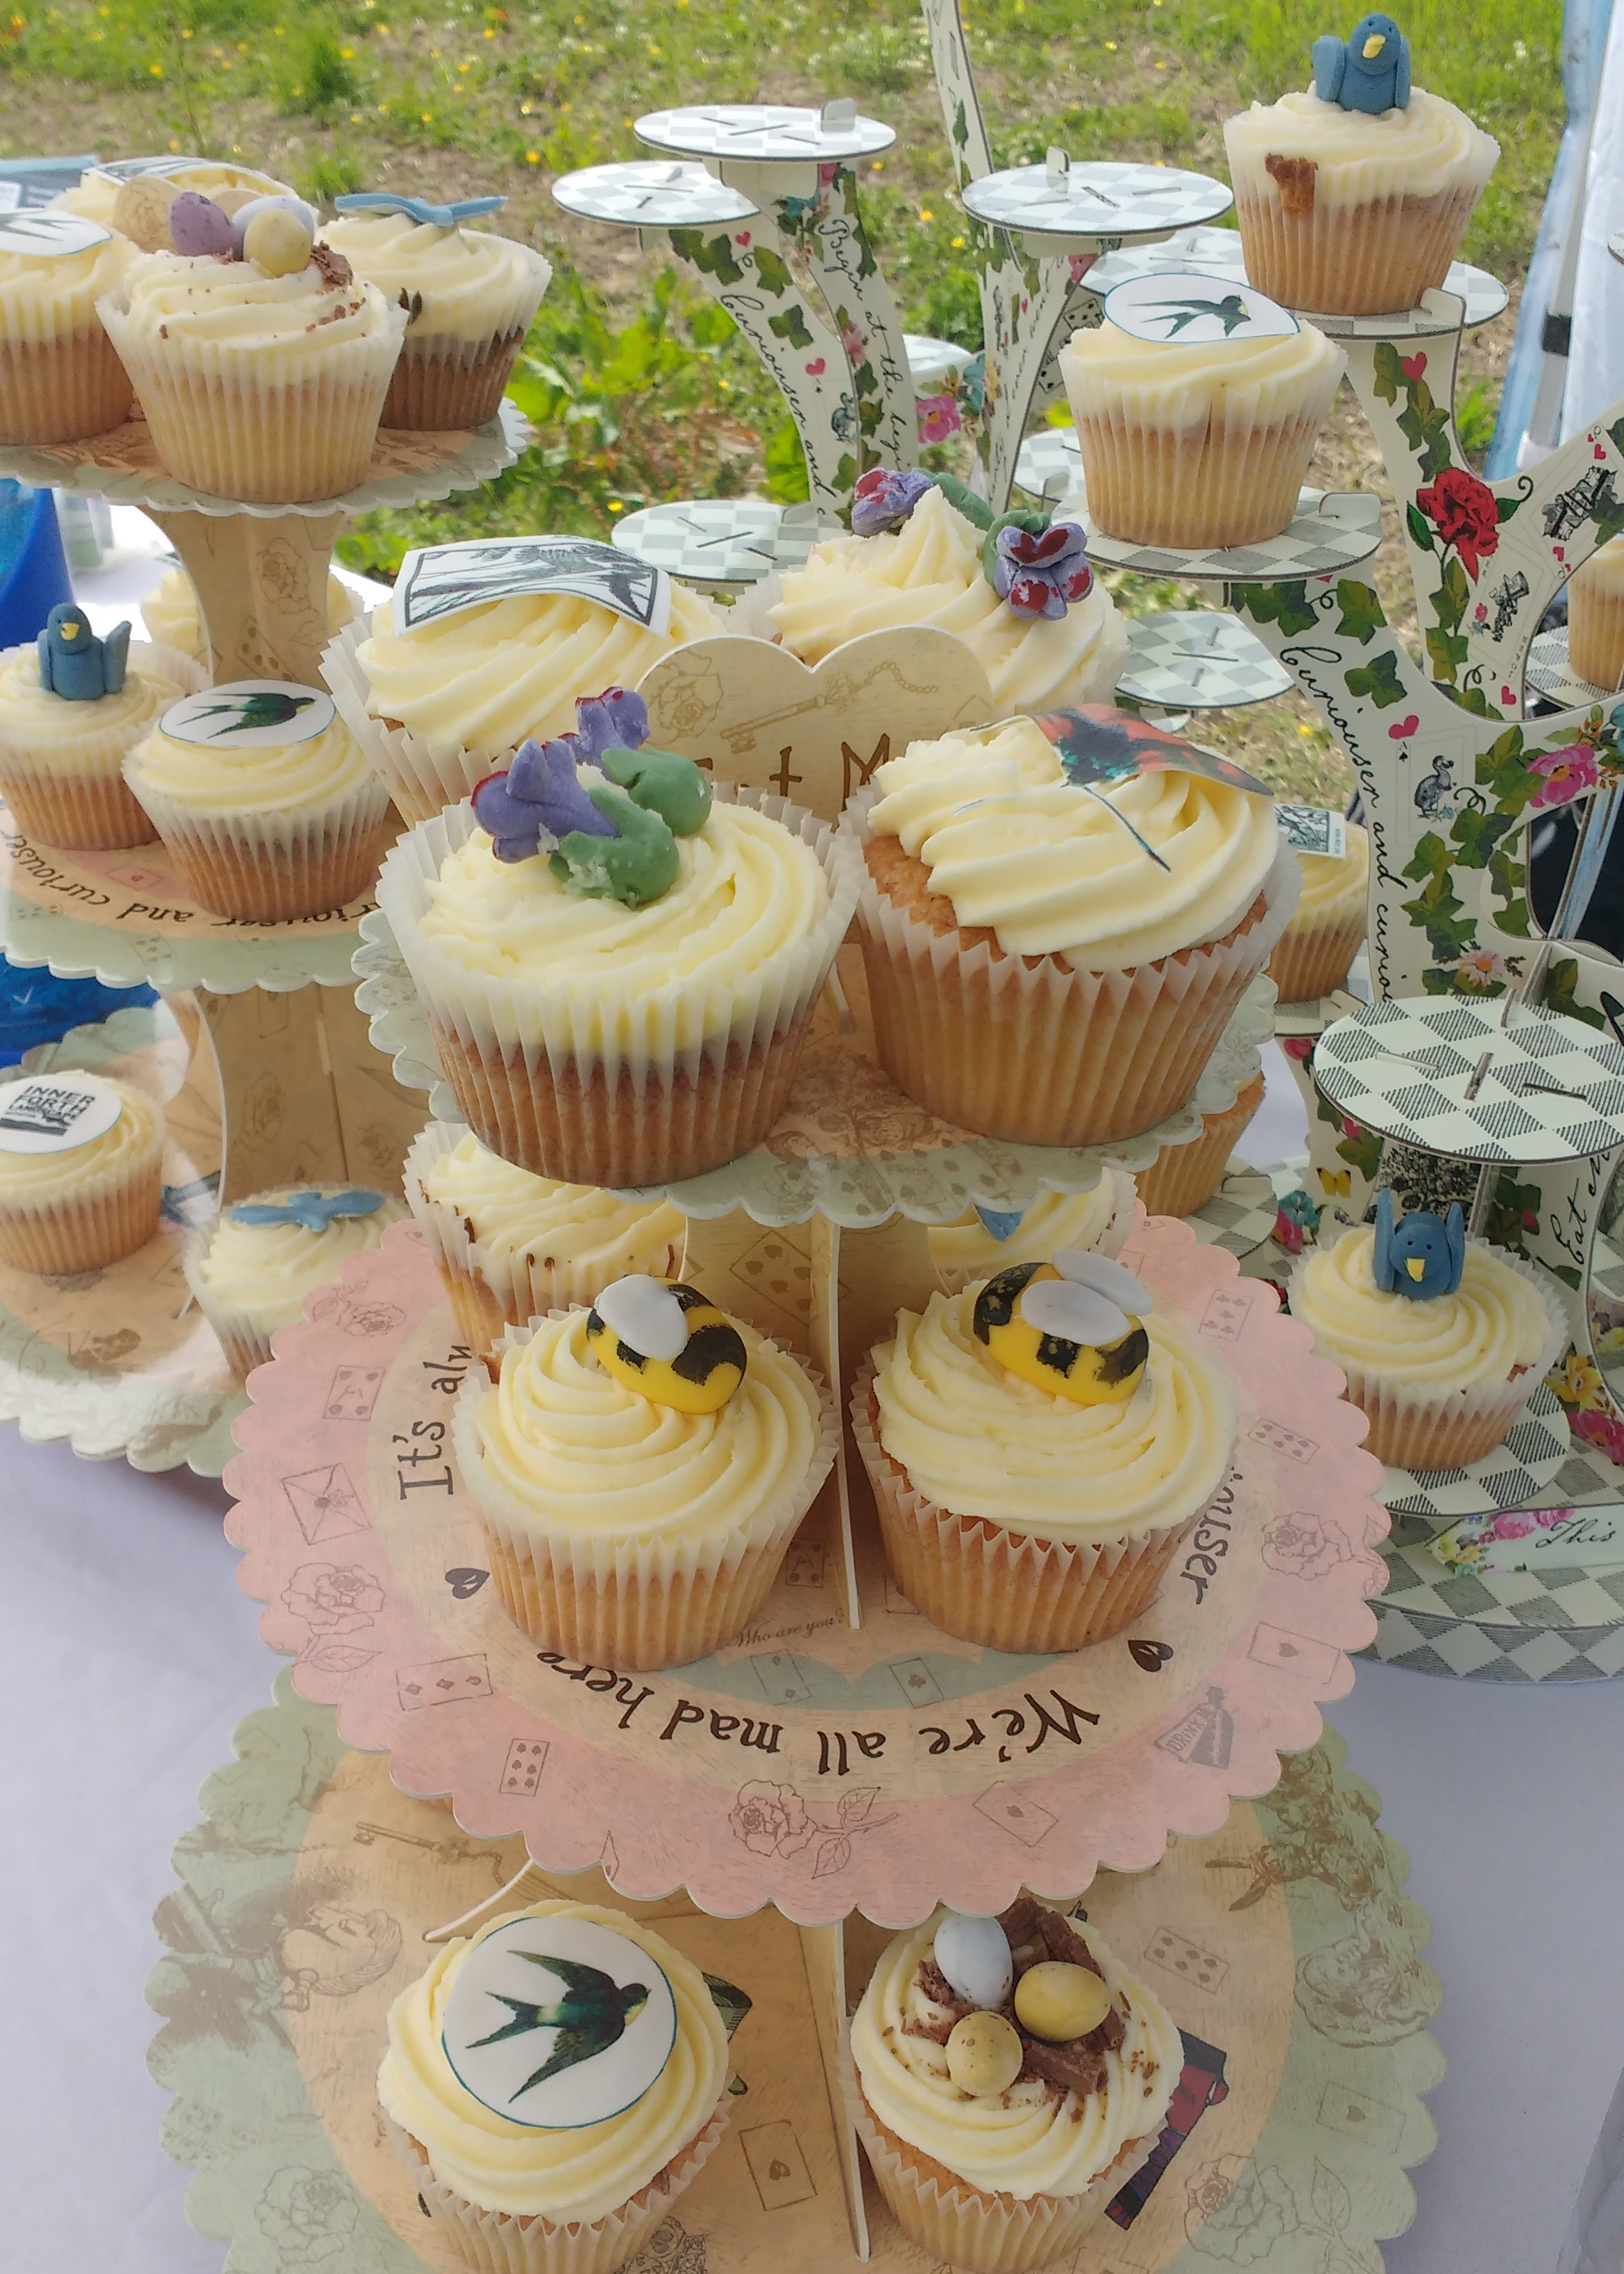 RSPB Black Devon Wetlands Fun Day 2018 cakes